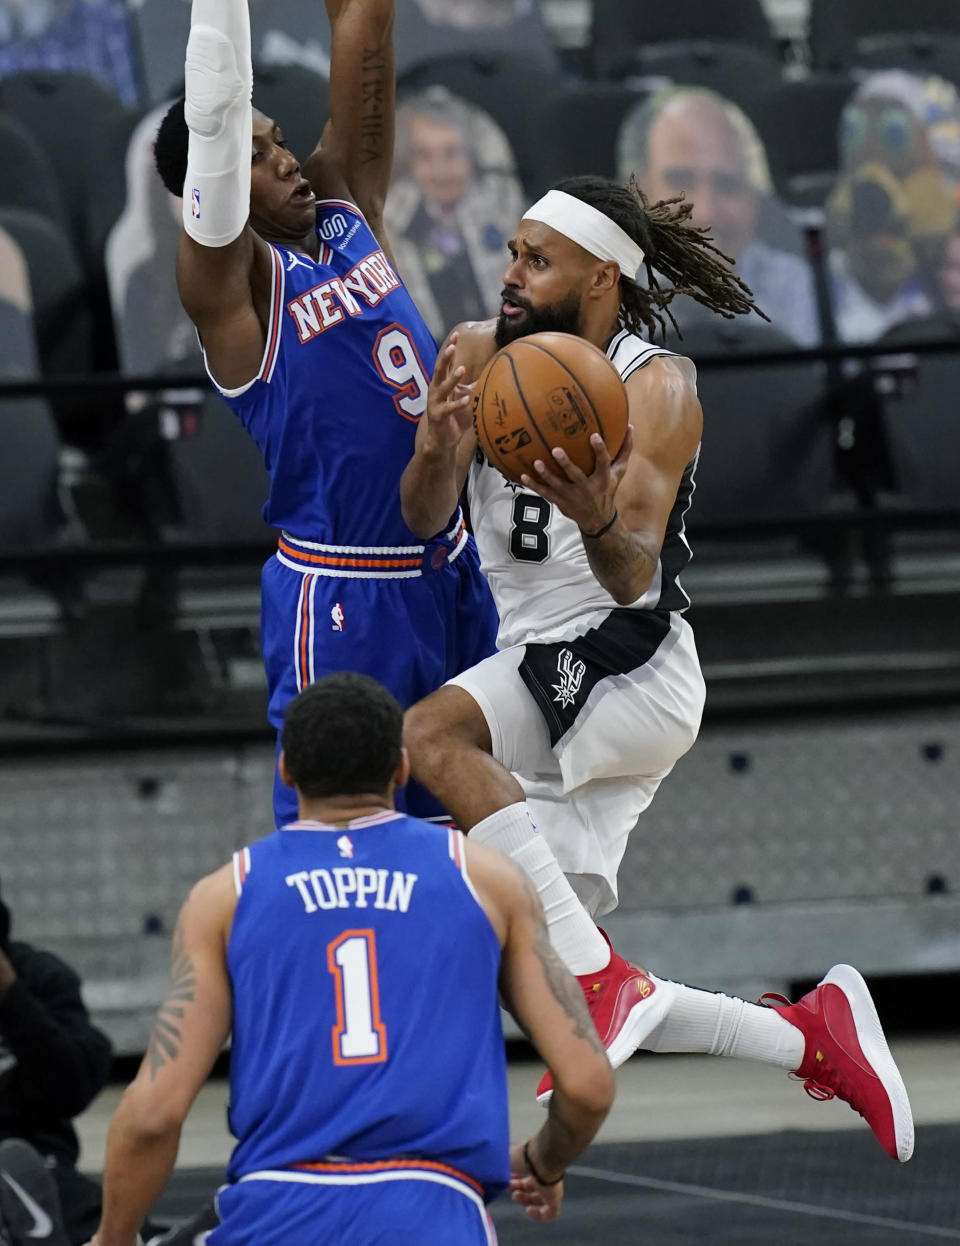 San Antonio Spurs guard Patty Mills (8) drives to the basket against New York Knicks guard RJ Barrett (9) during the second half of an NBA basketball game in San Antonio, Tuesday, March 2, 2021. (AP Photo/Eric Gay)